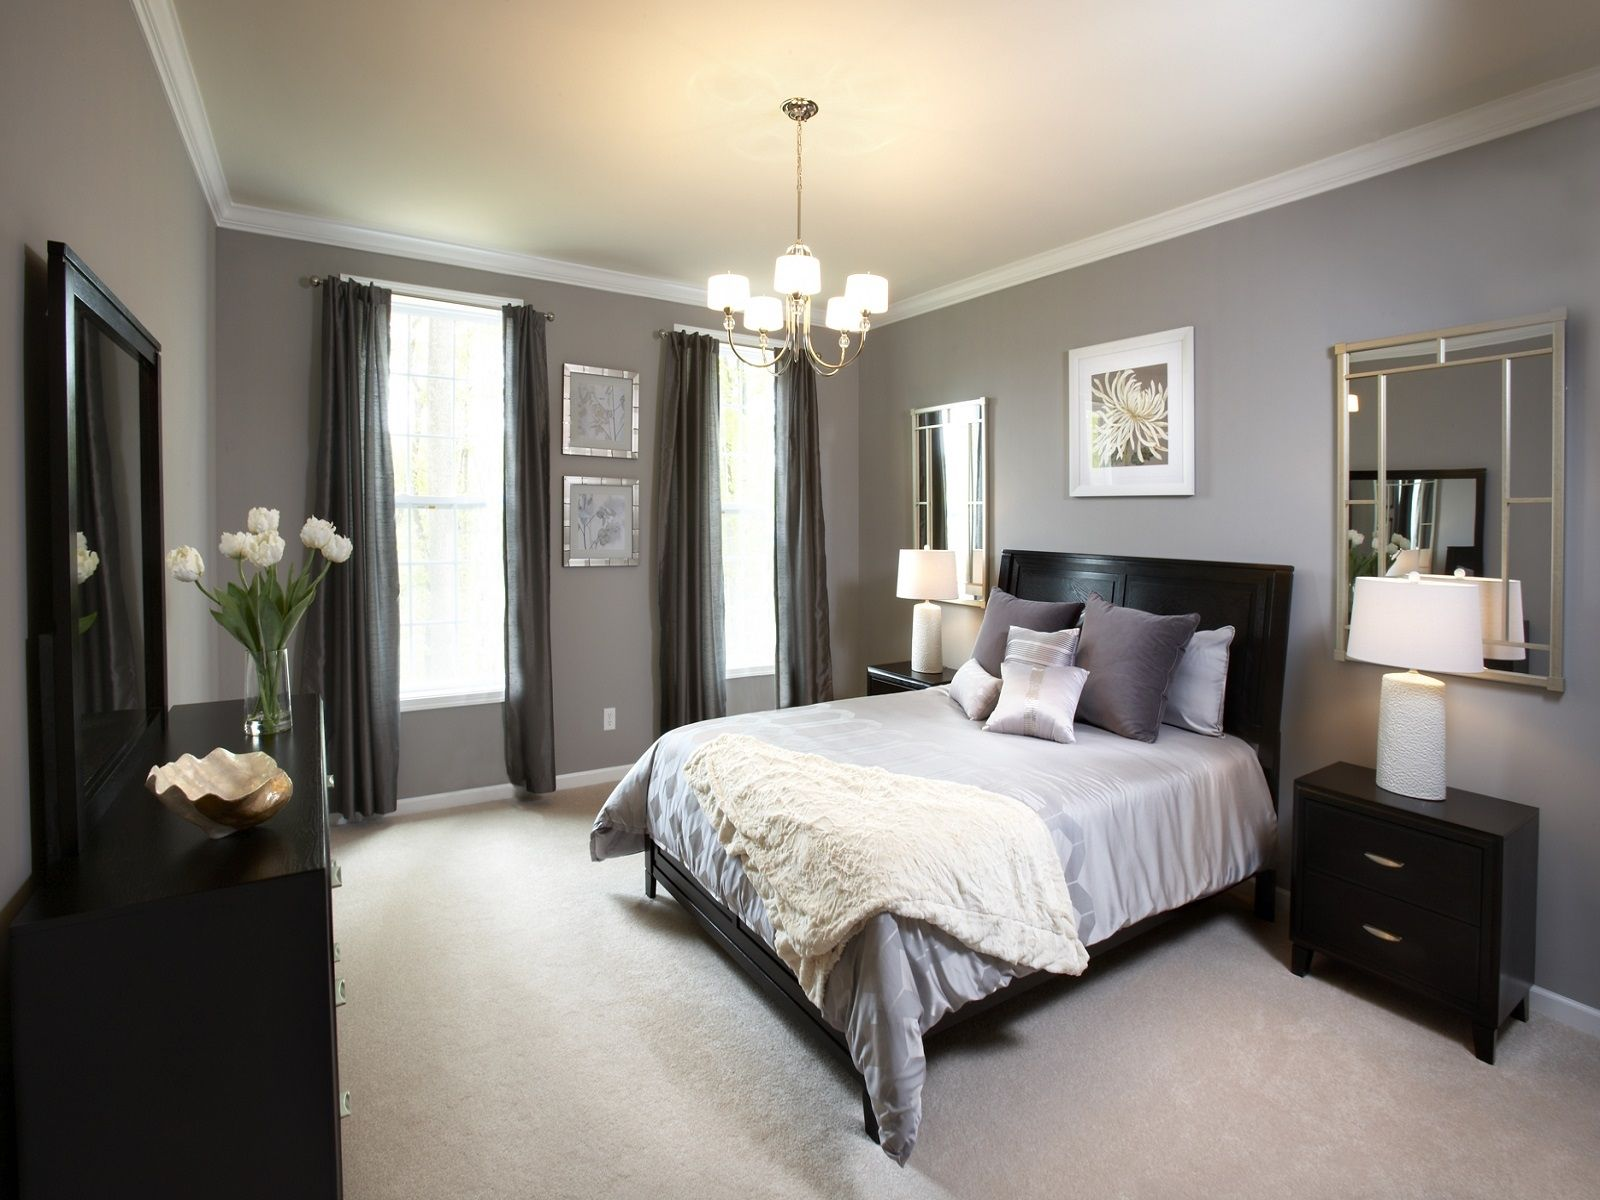 Romantic master bedroom paint ideas - 45 Beautiful Paint Color Ideas For Master Bedroom